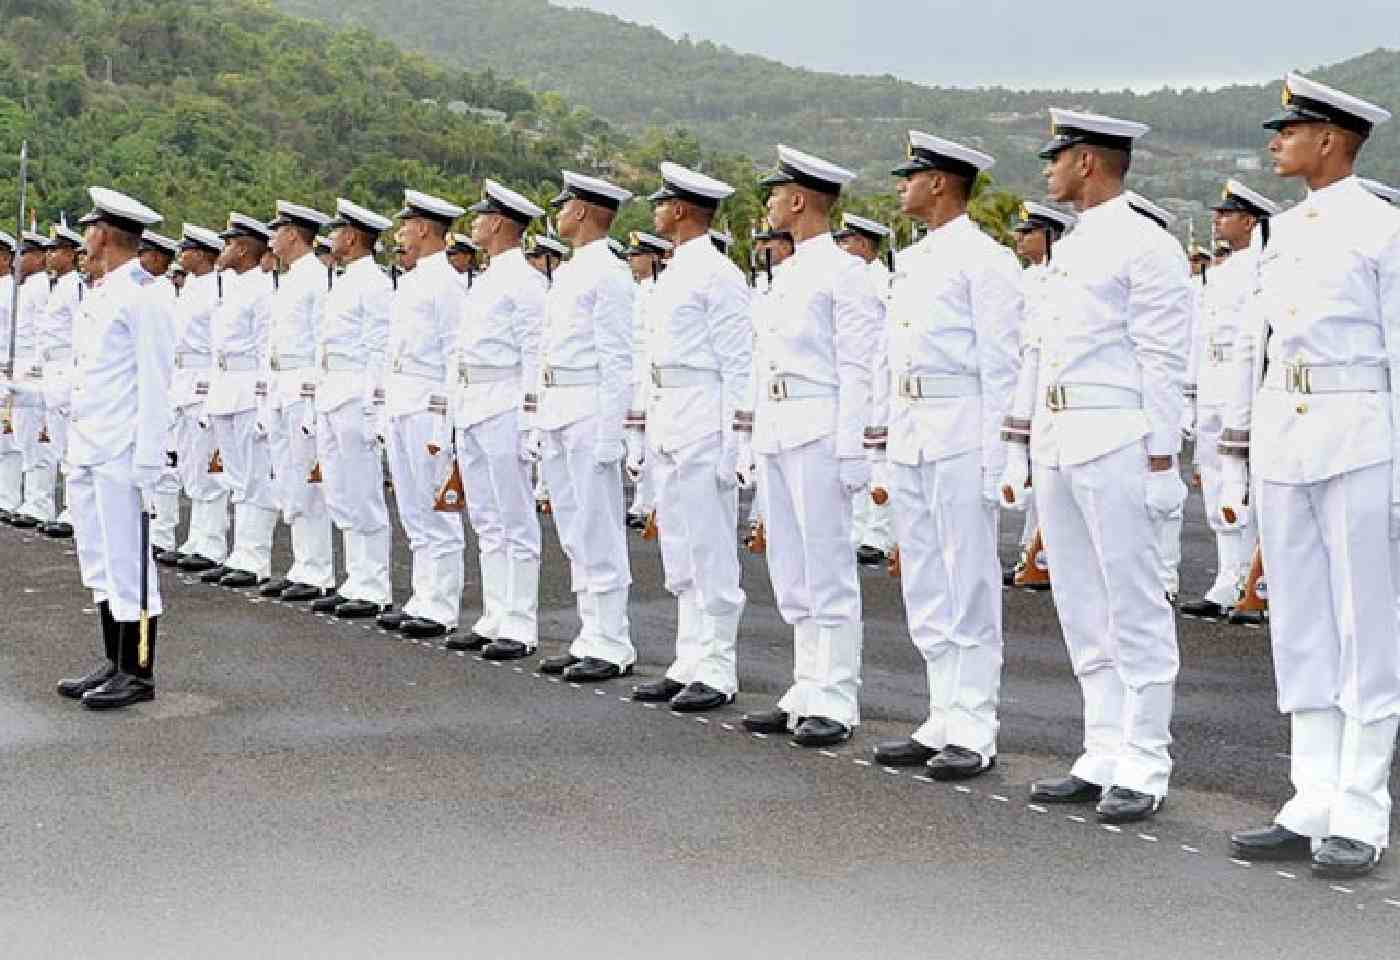 Indian Navy Recruitment 2021 Short Service Commission Officer Vacancy How To apply Read Details